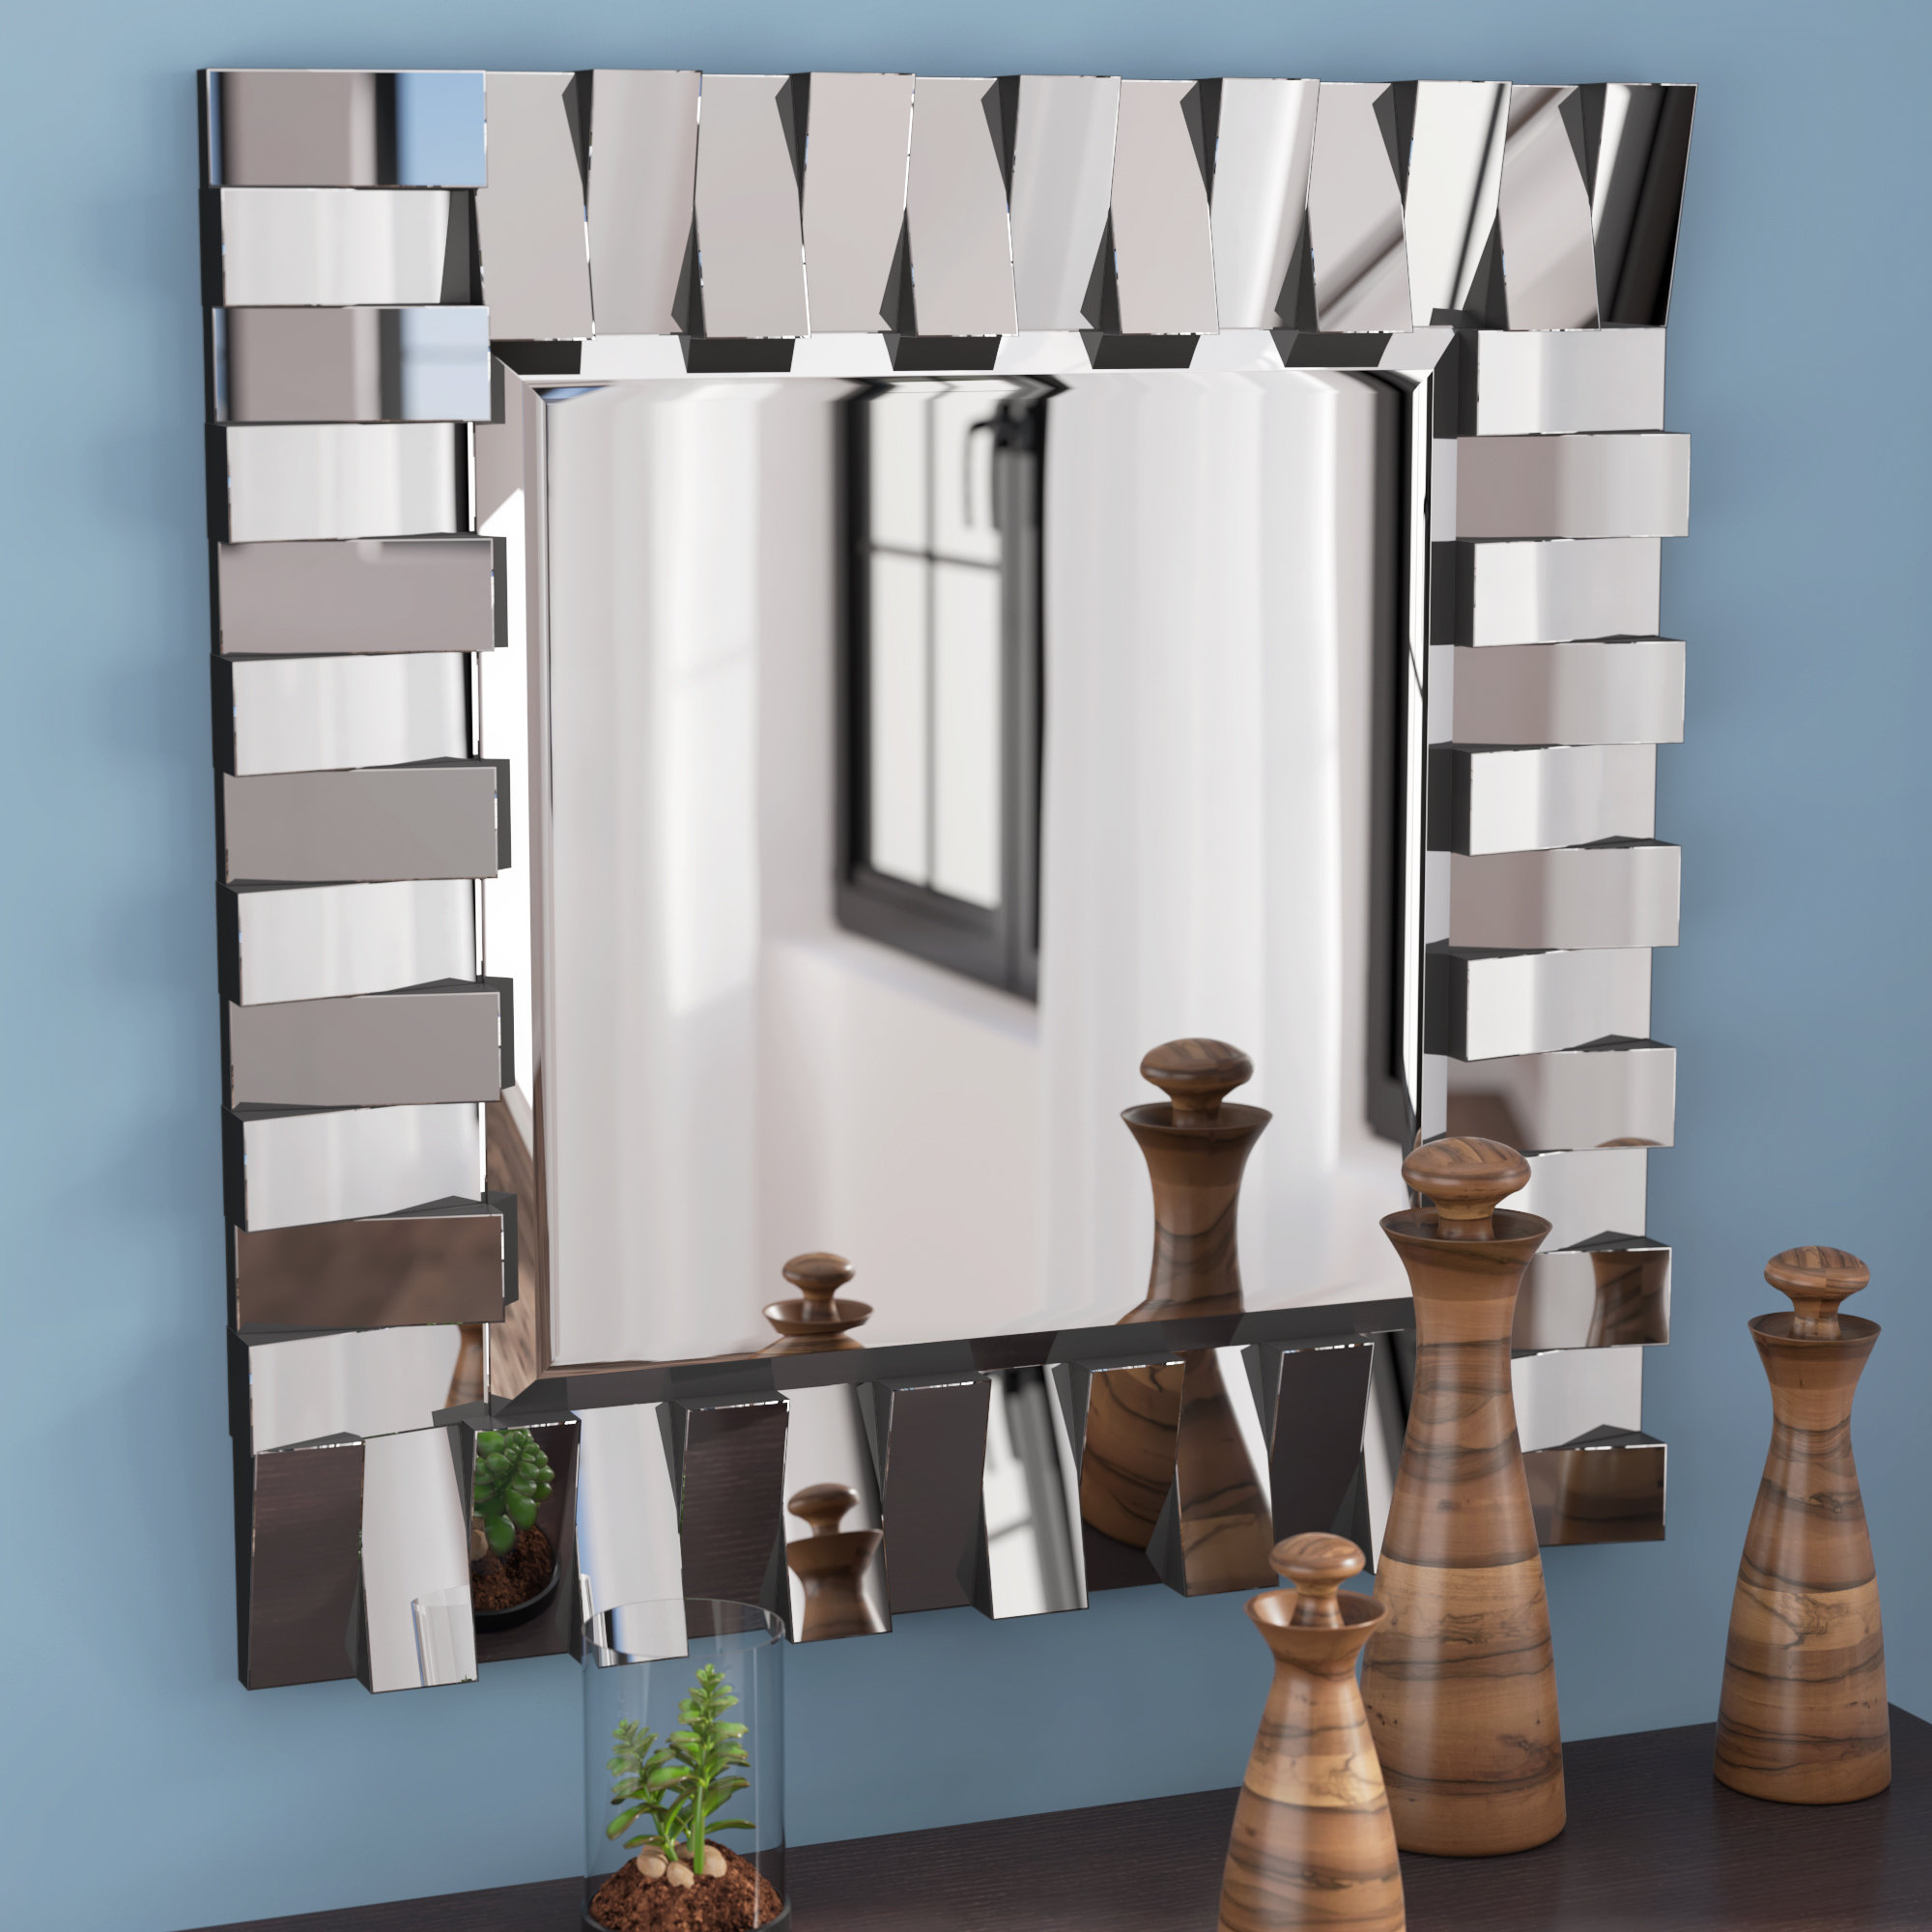 Modern & Contemporary Beveled Wall Mirror For Best And Newest Pennsburg Rectangle Wall Mirrors (View 7 of 20)